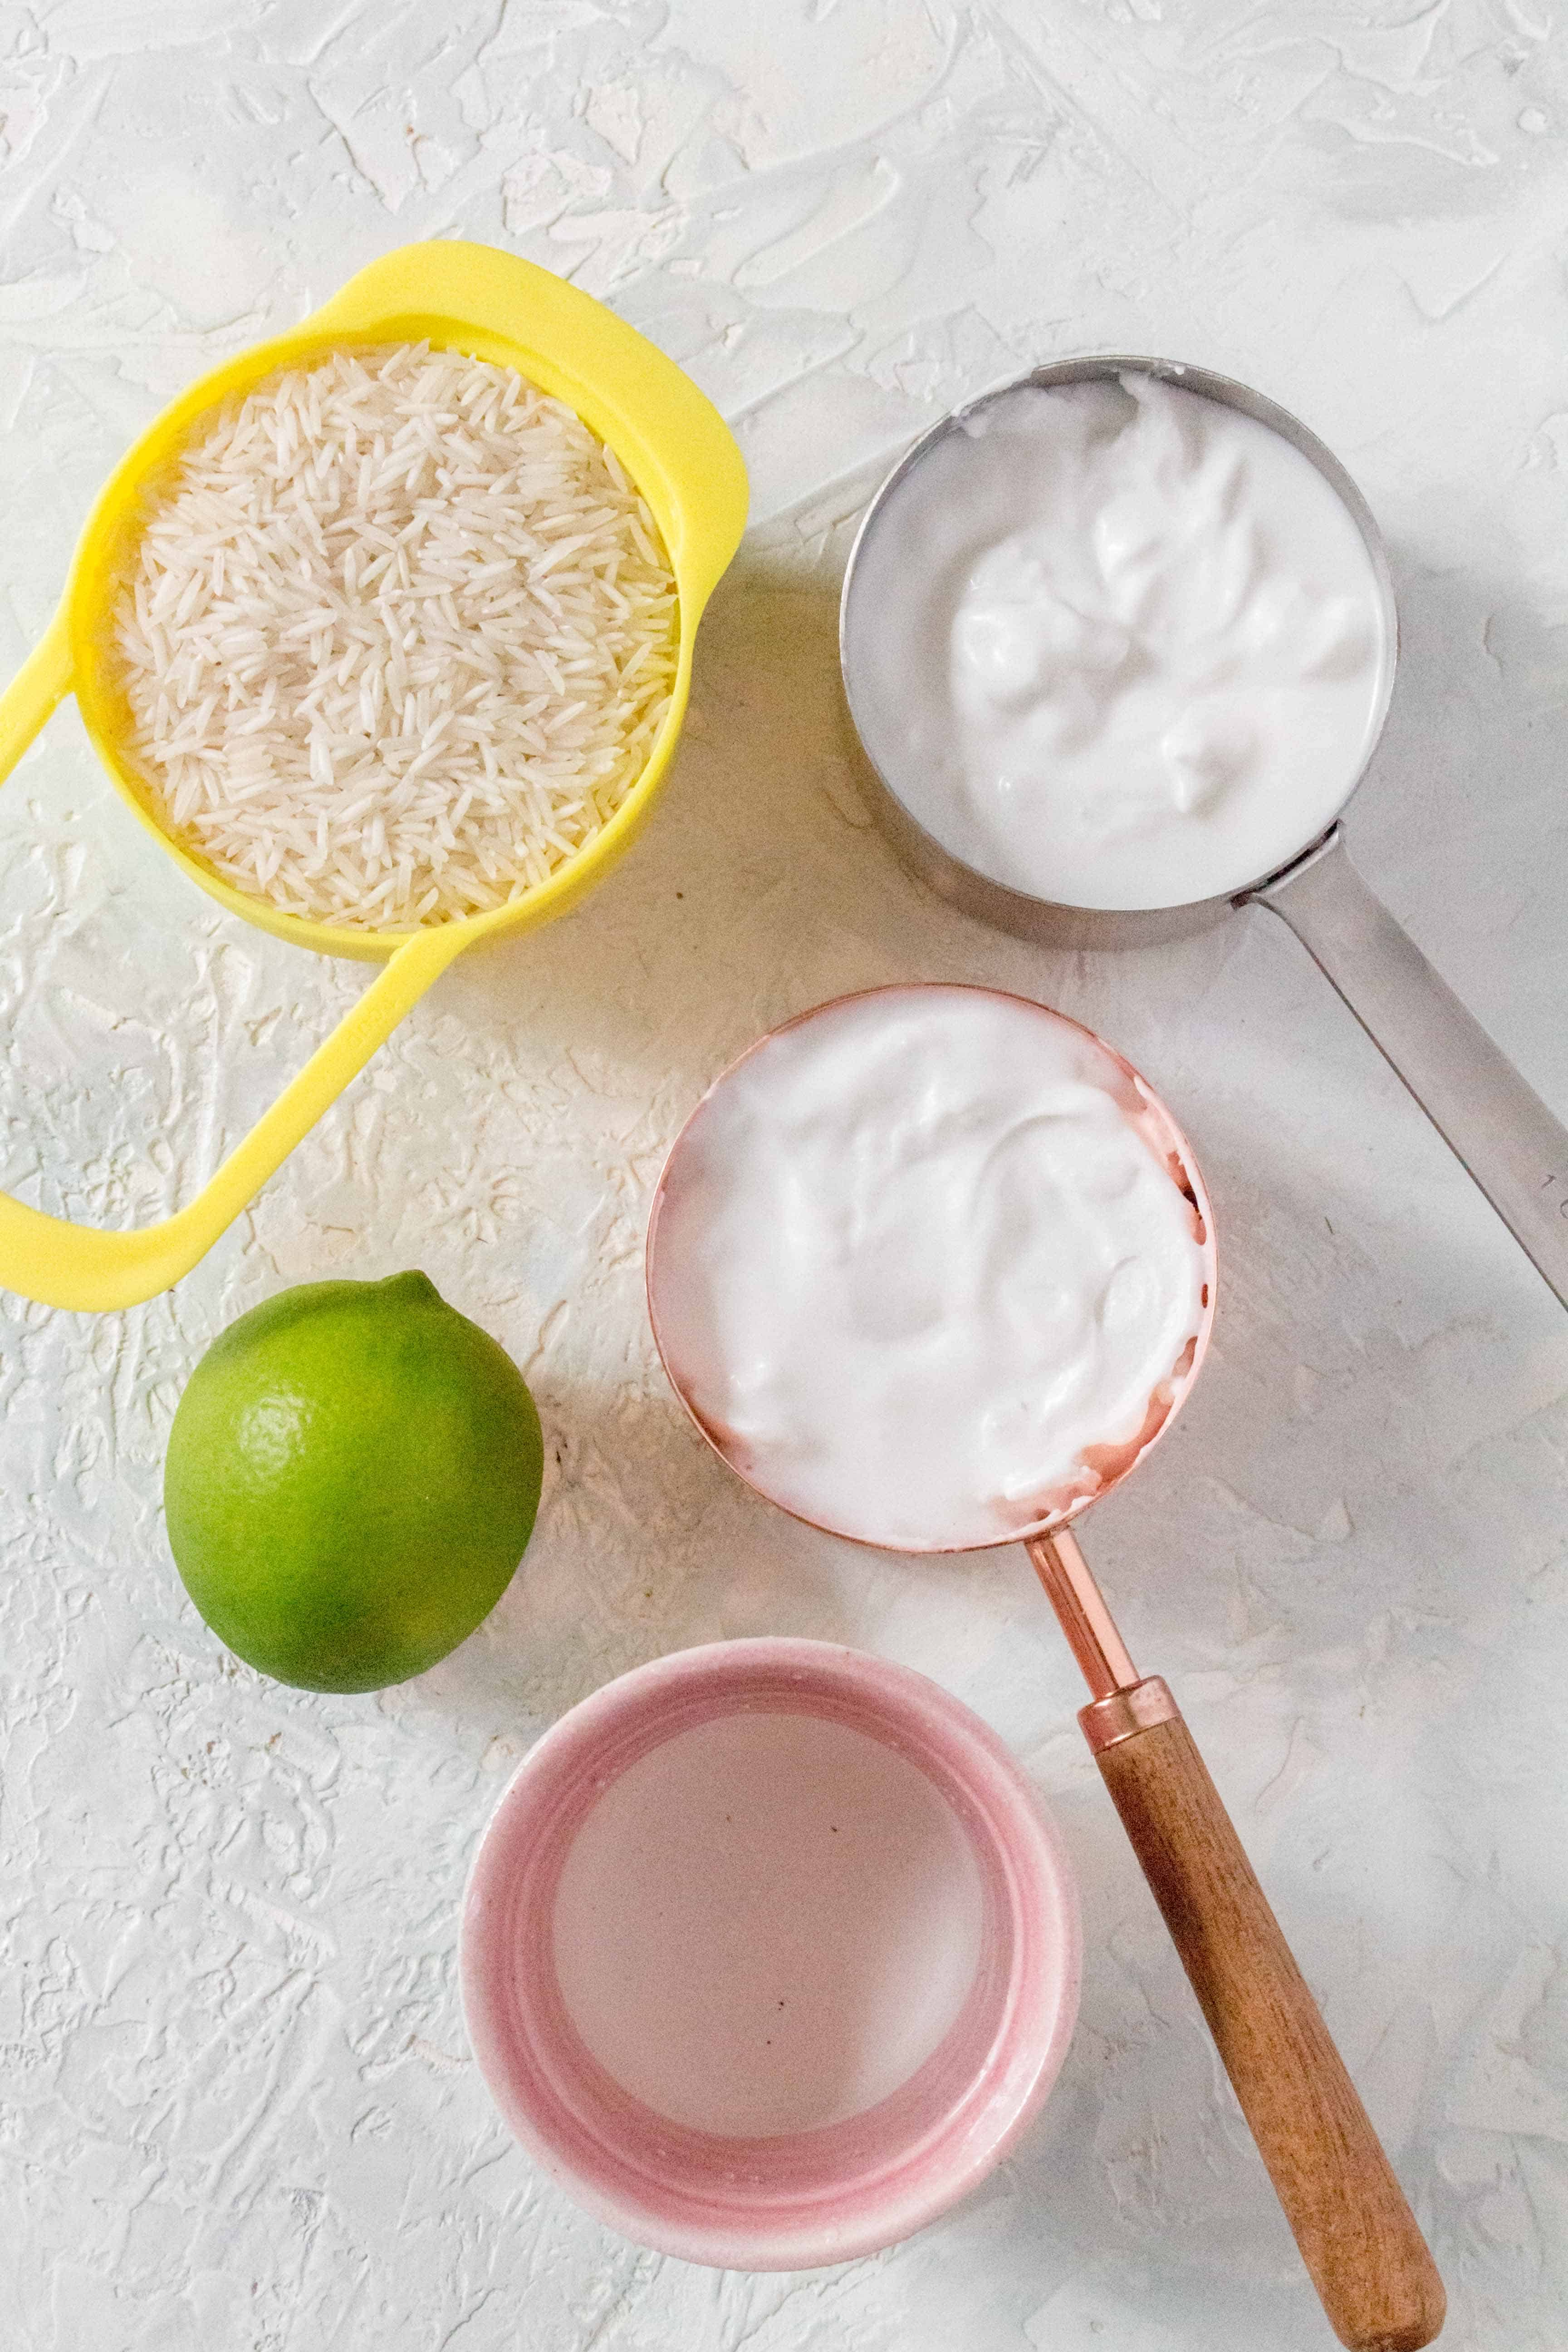 What You'll Need To Make Coconut Rice on the Stovetop